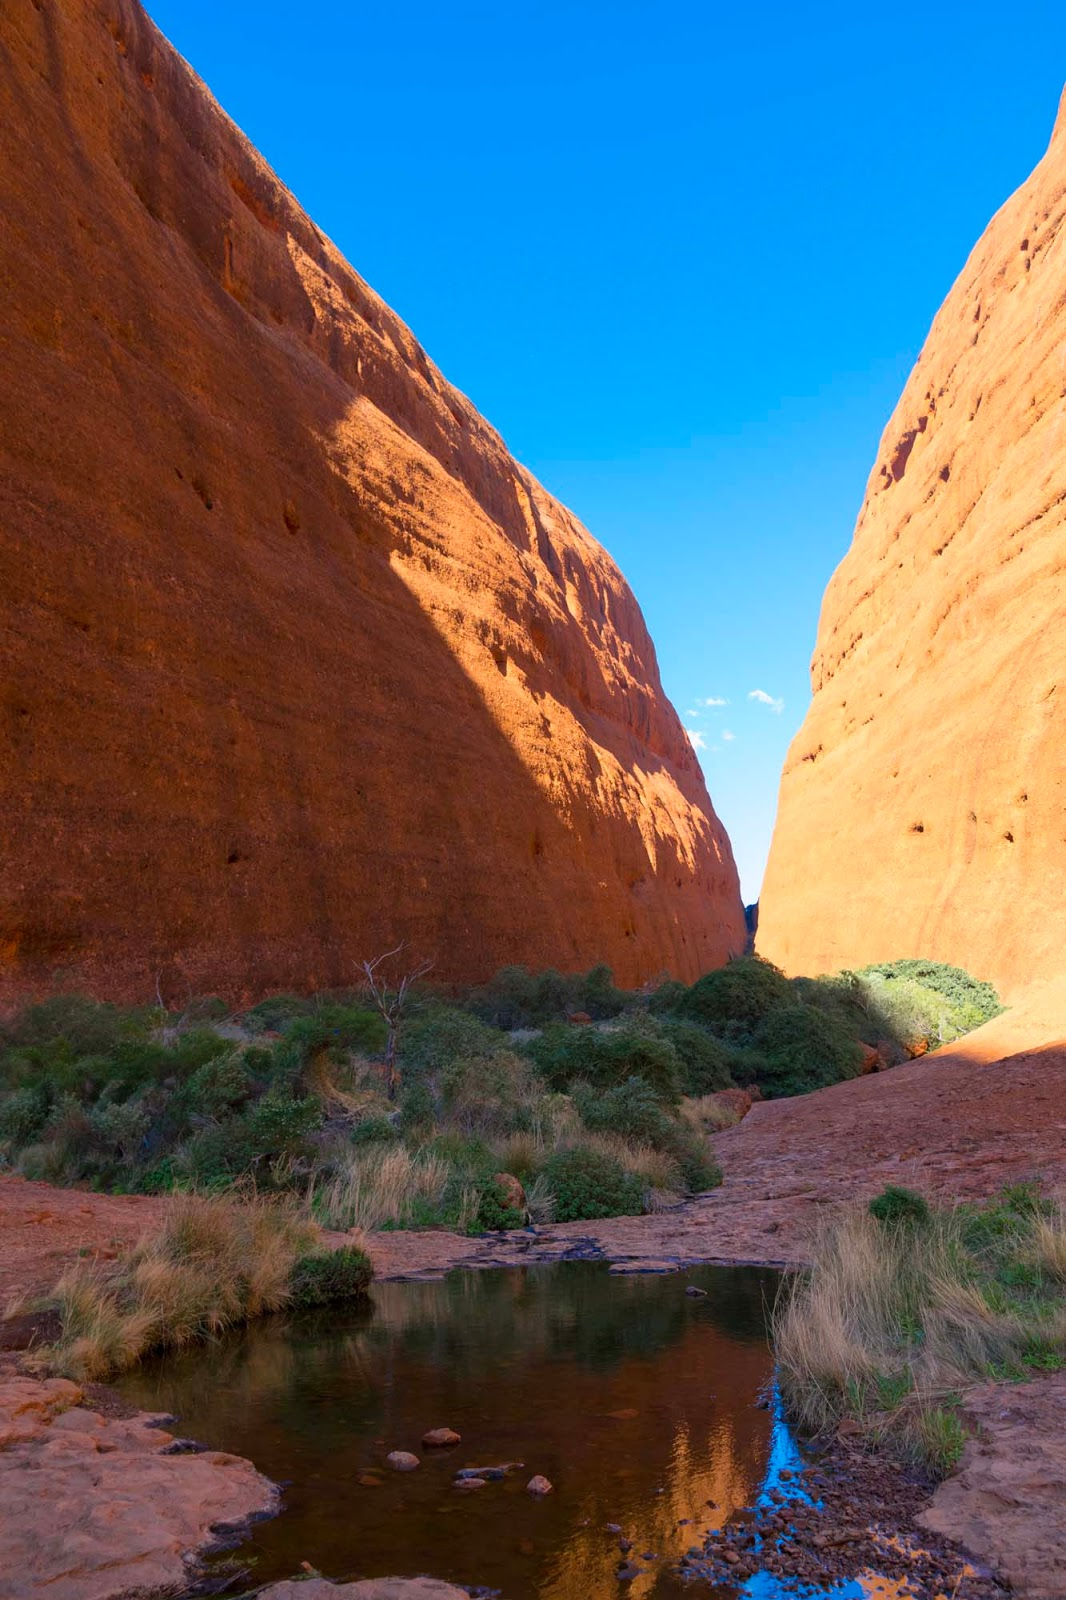 valleys in kata tjuta